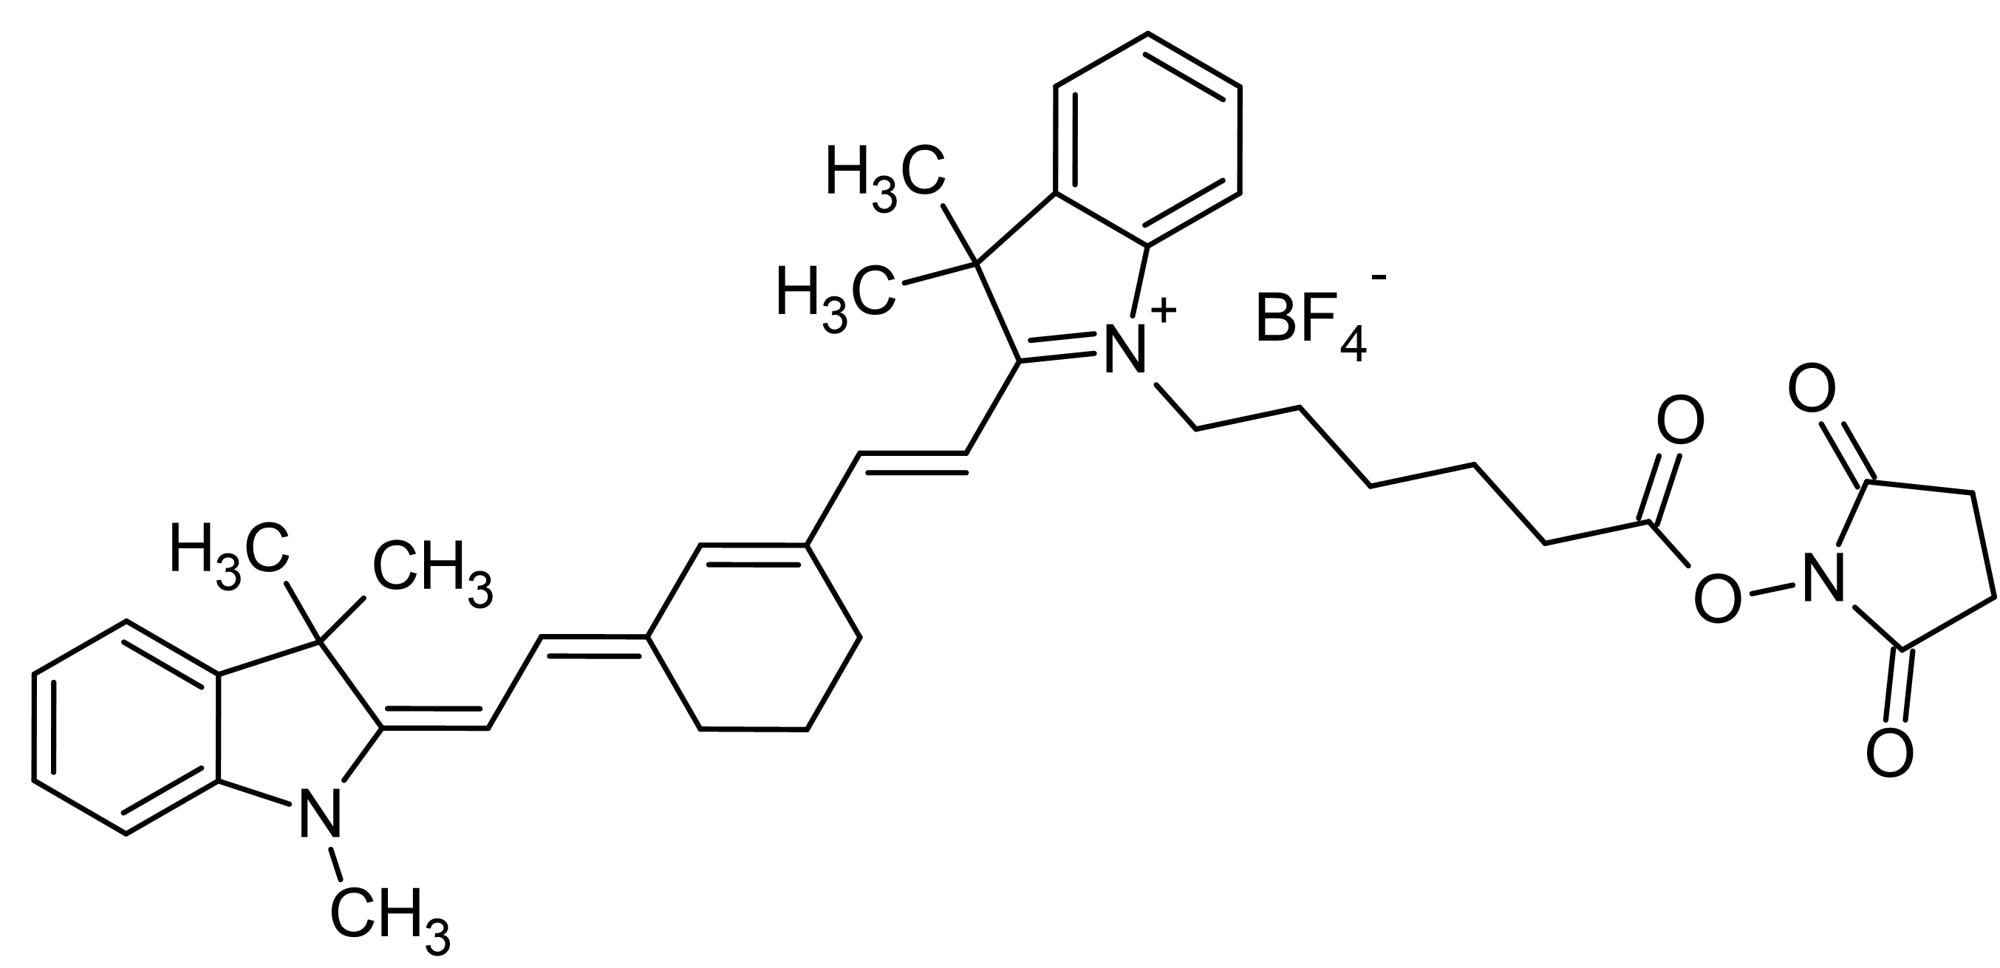 Chemical Structure - Cyanine7 NHS ester, Amine- reactive NIR emitting fluorescent dye (ab146456)